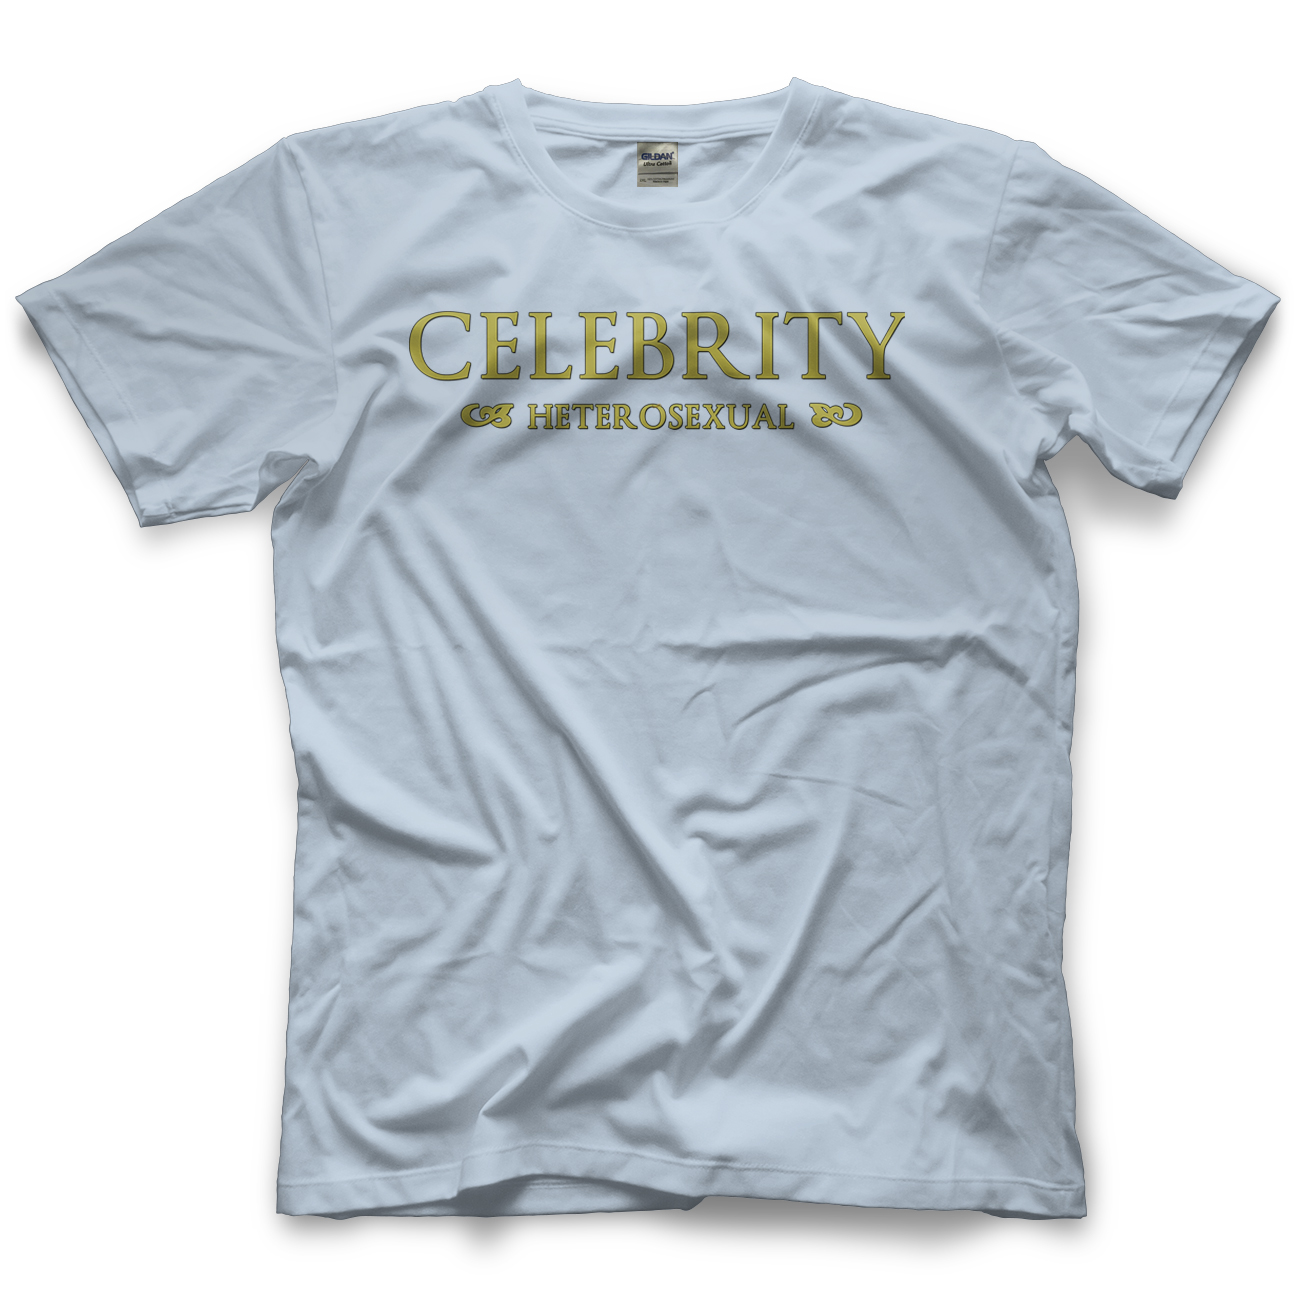 New Age Insiders Chrisley T-shirt